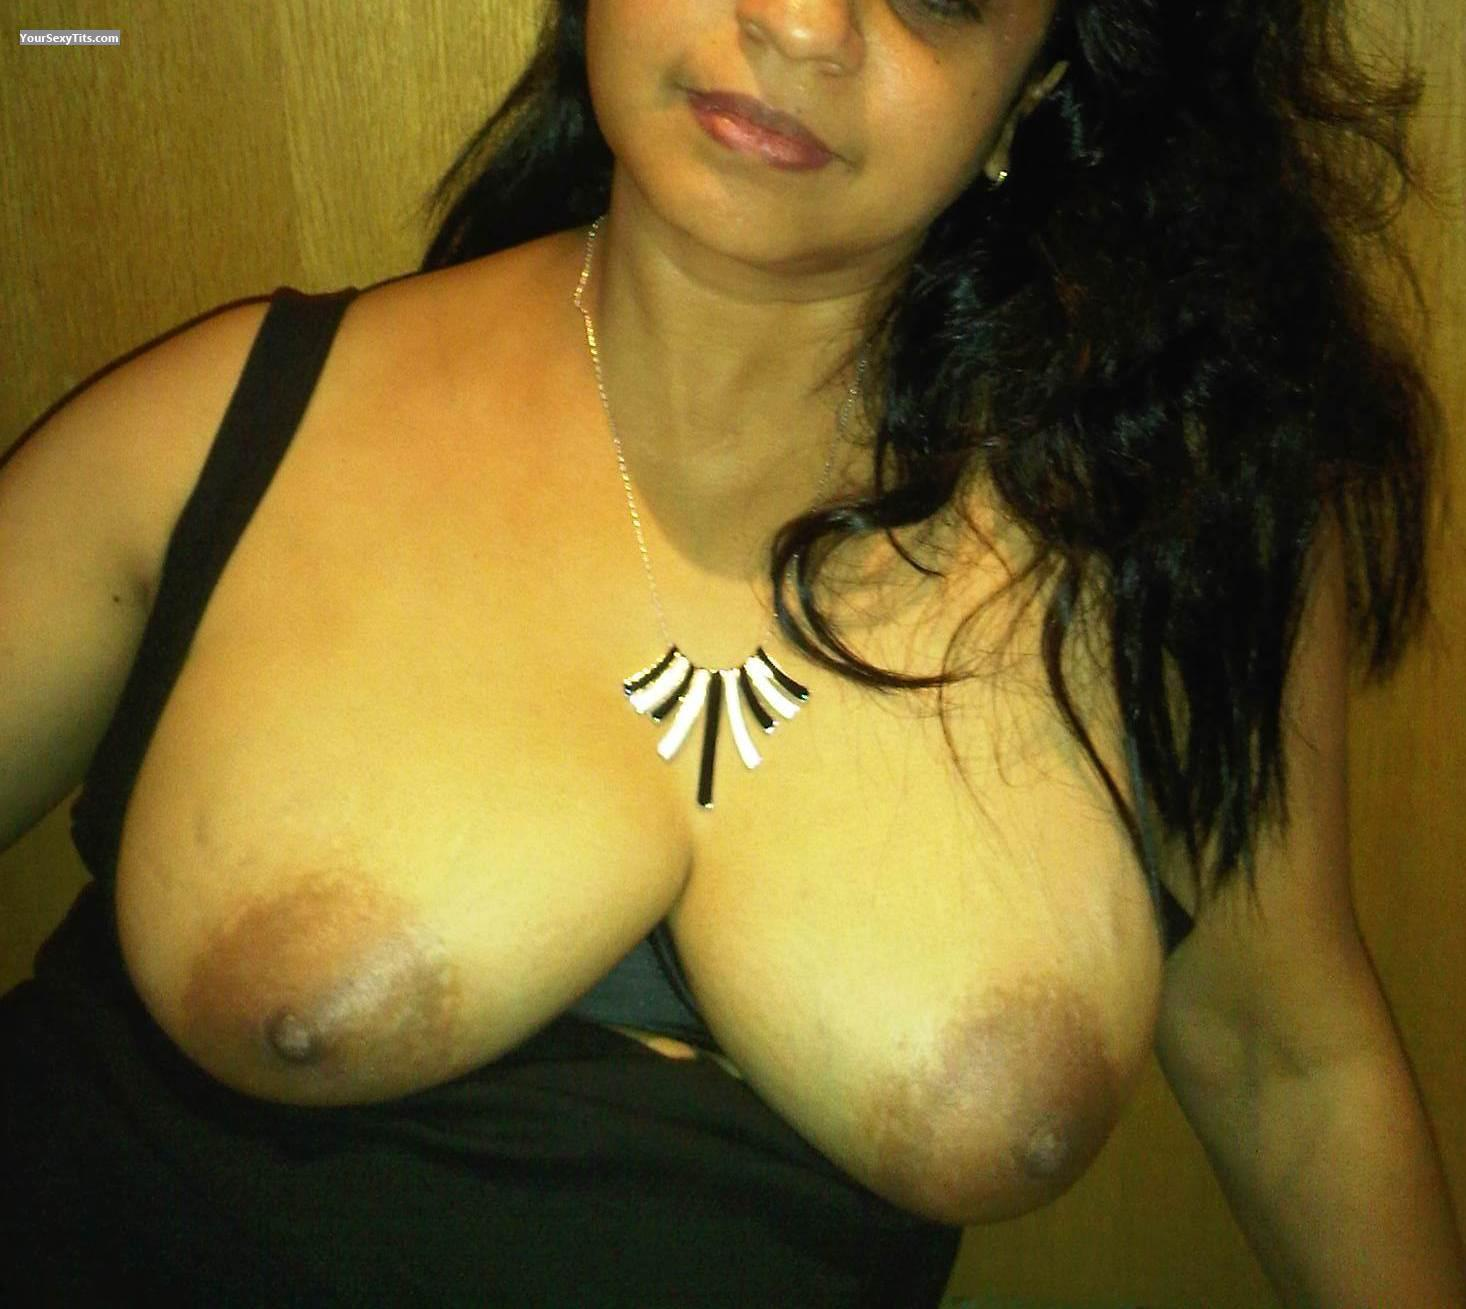 Tit Flash: Medium Tits - Su from United States